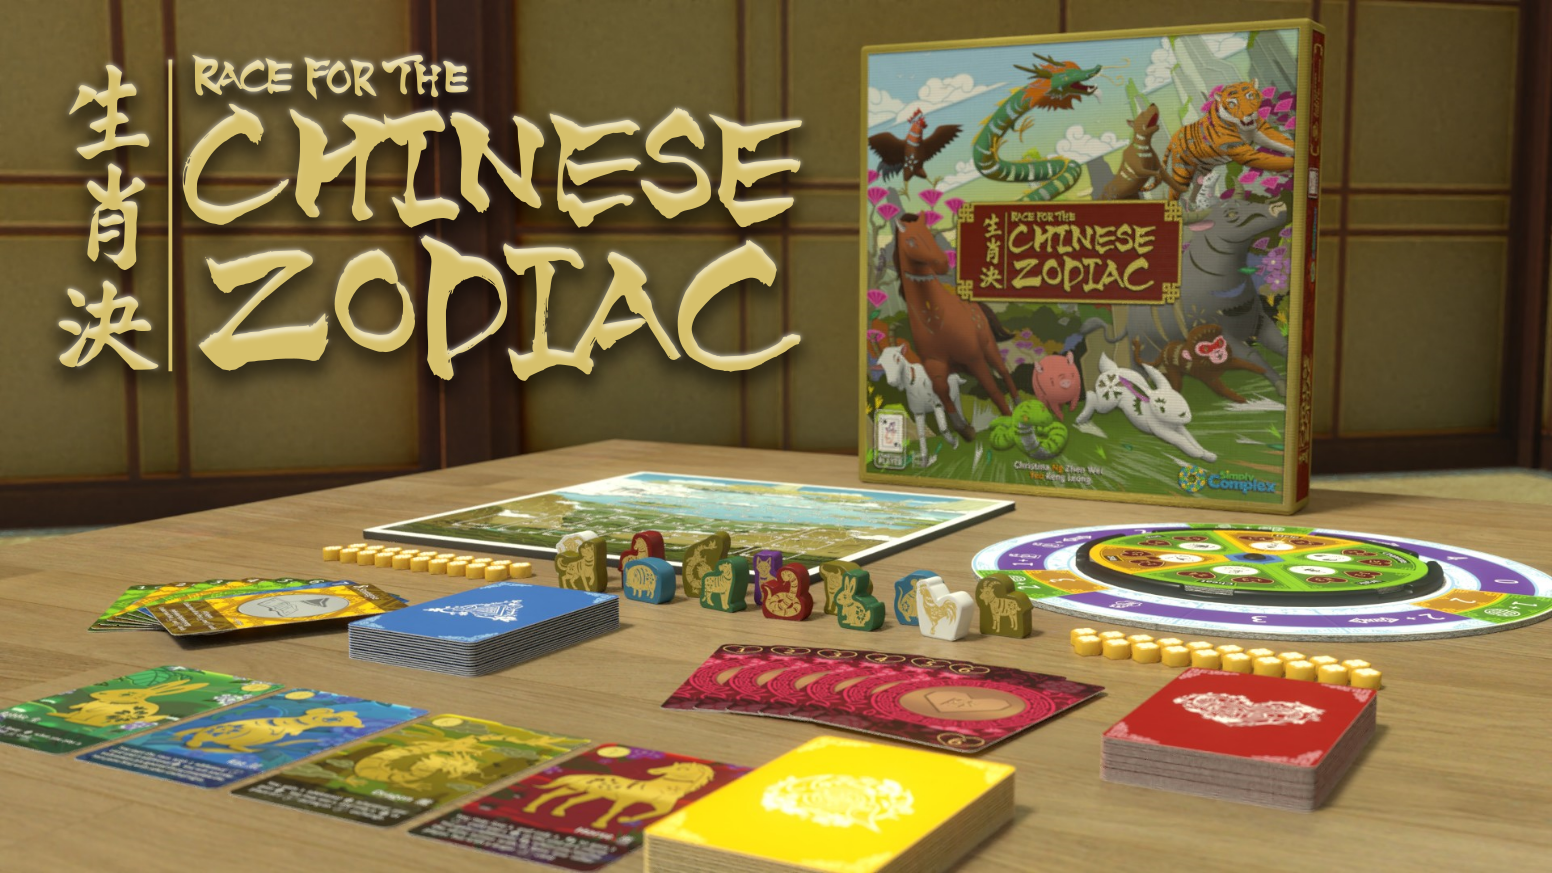 Experience The Great Race! Presenting the 3rd title in the Simply Complex line from Capstone Games